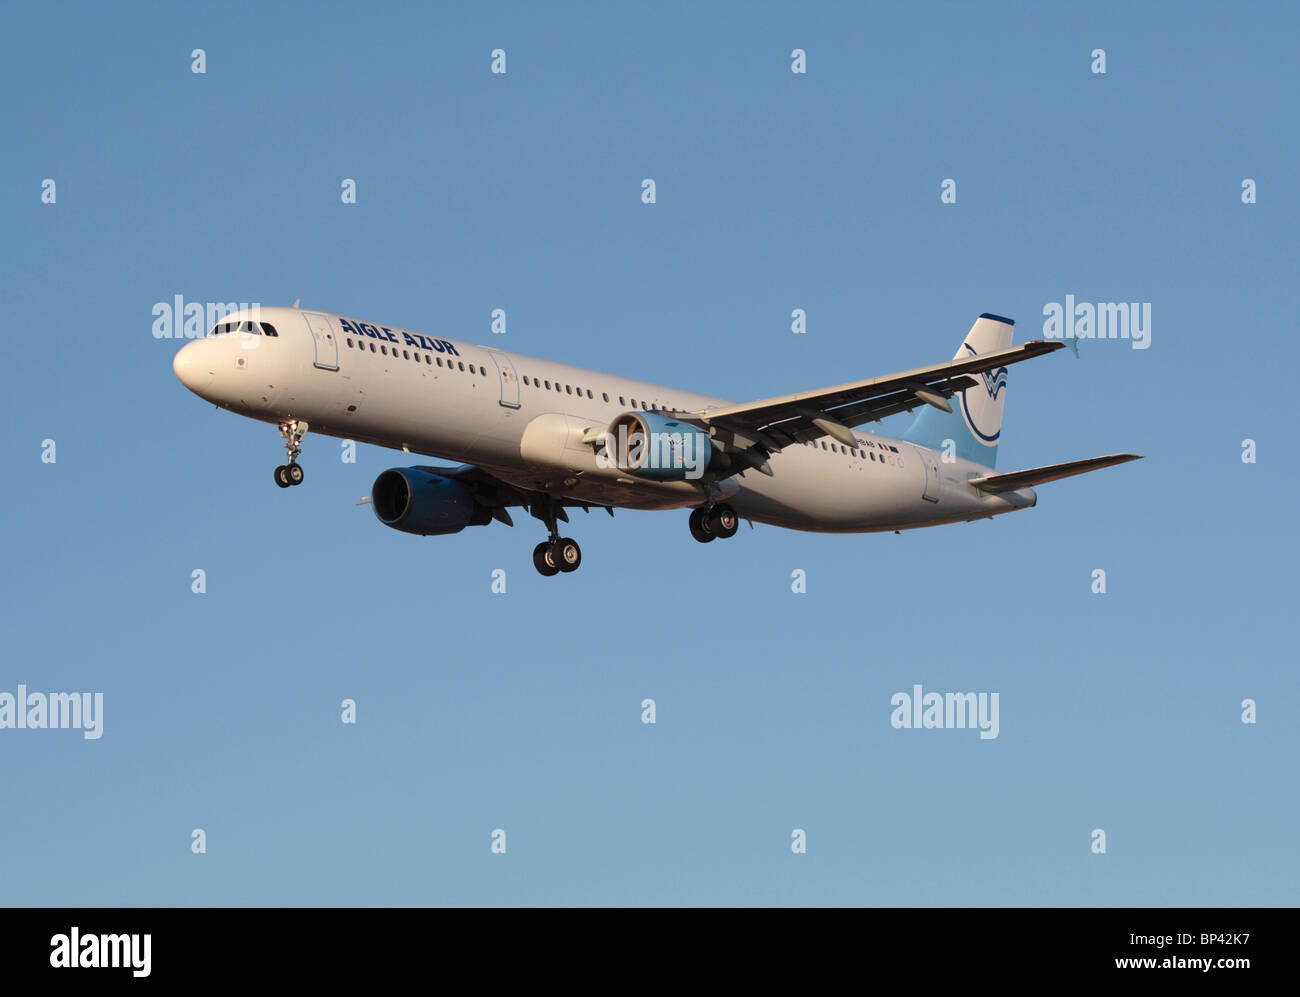 Aigle Azur Airbus A321 airliner on approach - Stock Image